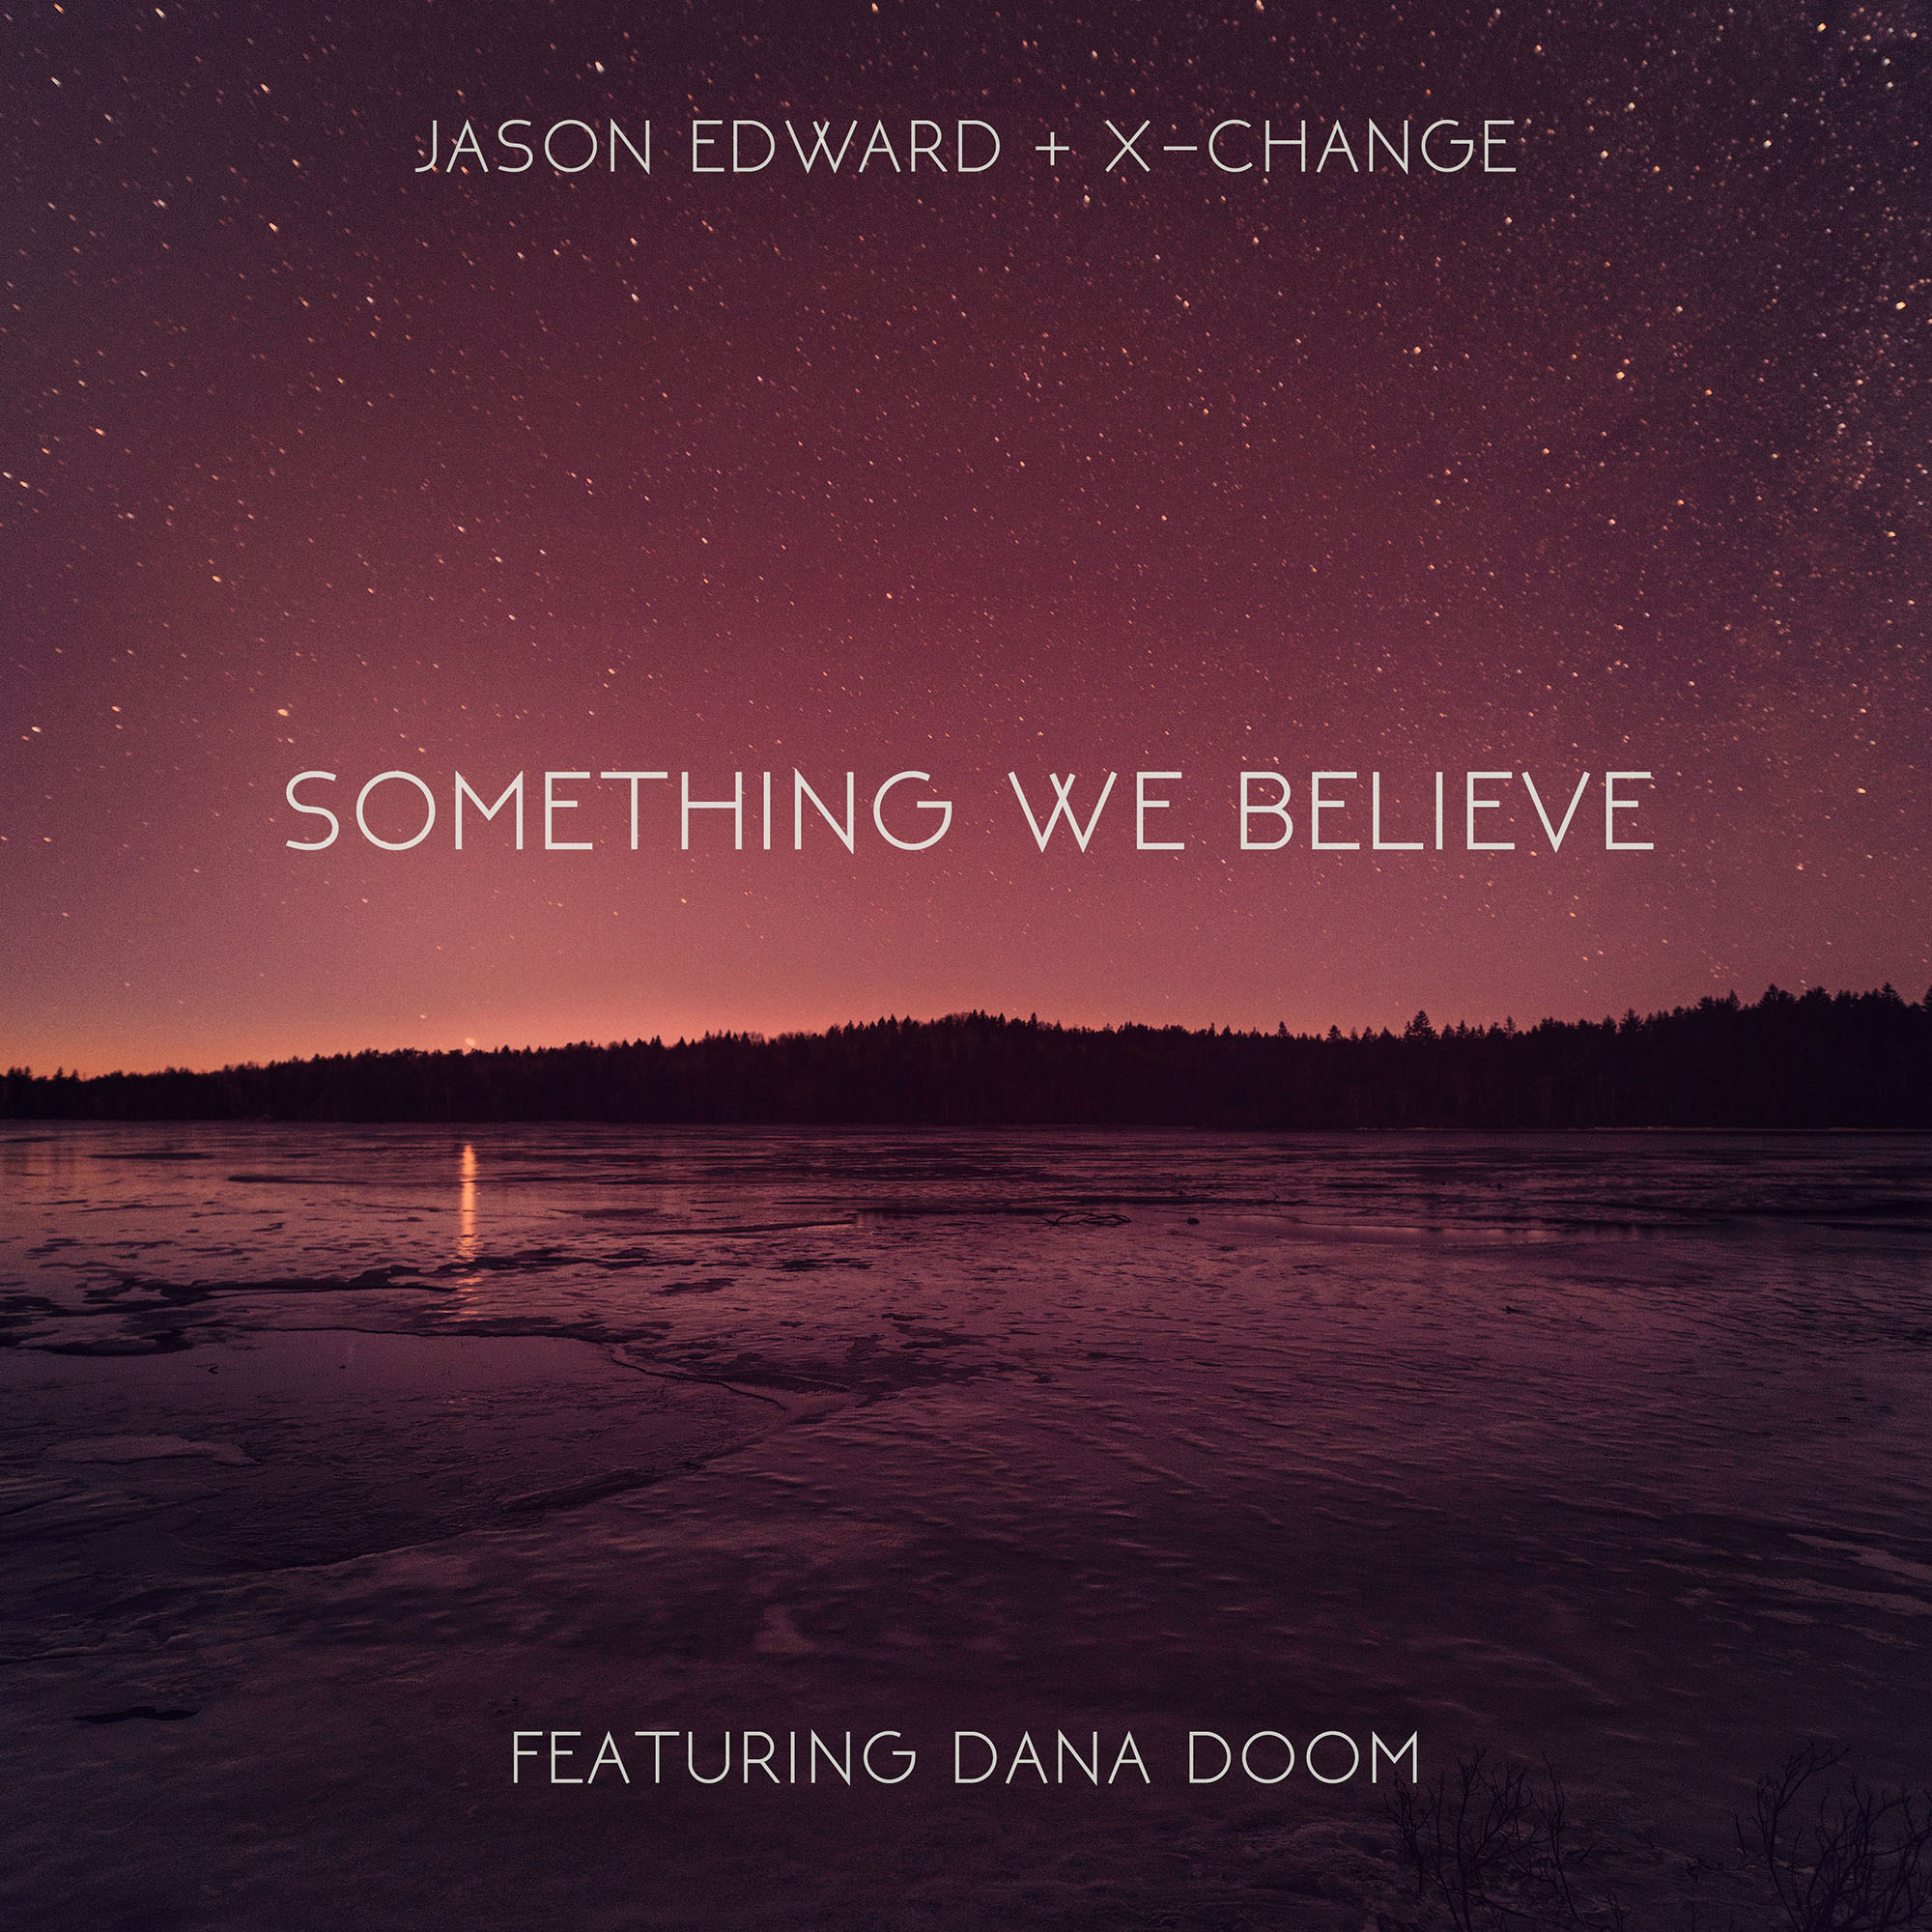 Jason Edward and X-Change ft Dana Doom - Something We Believe (Artwork)